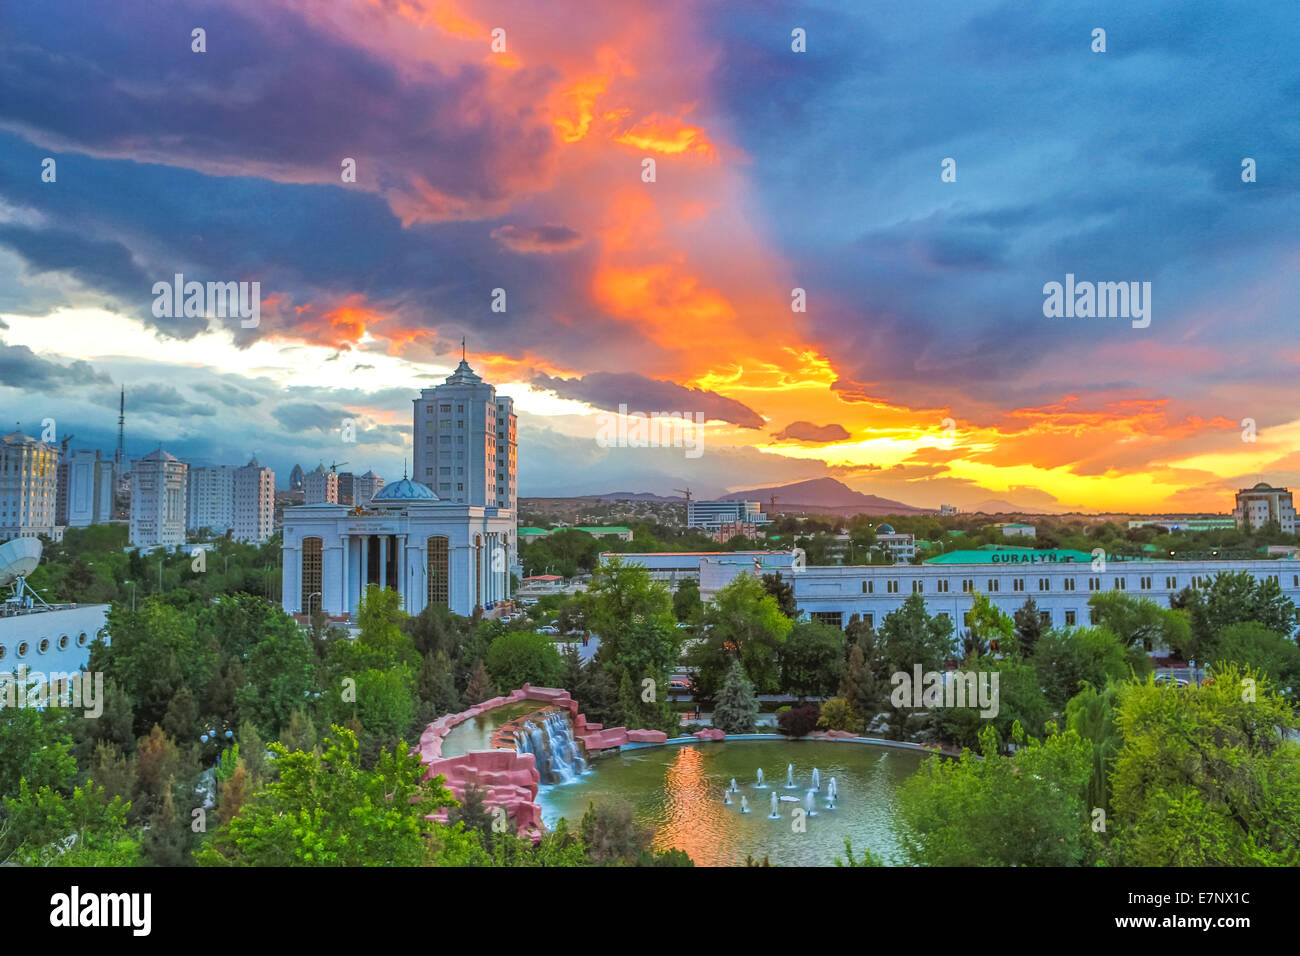 Ashgabat, Turkmenistan, Central Asia, Asia, city, colourful, downtown, dramatic, sunset - Stock Image